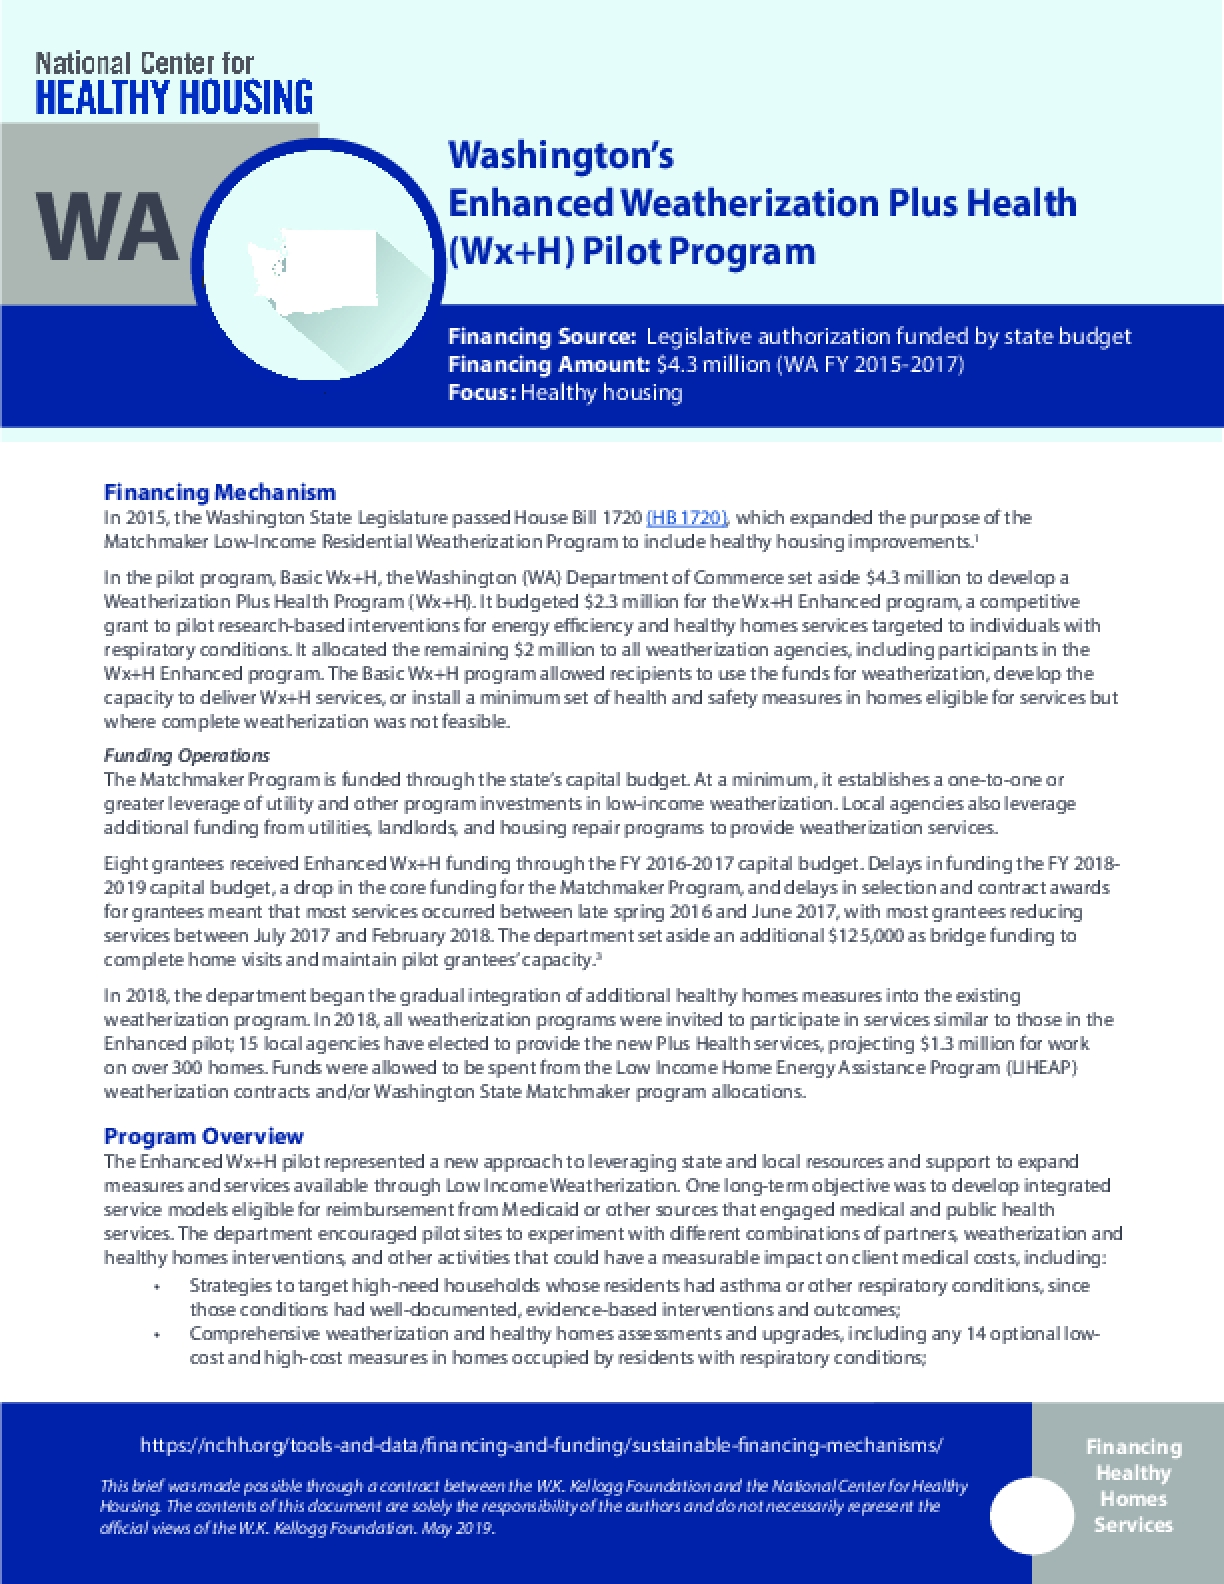 Washington's Enhanced Weatherization Plus Health Pilot Program